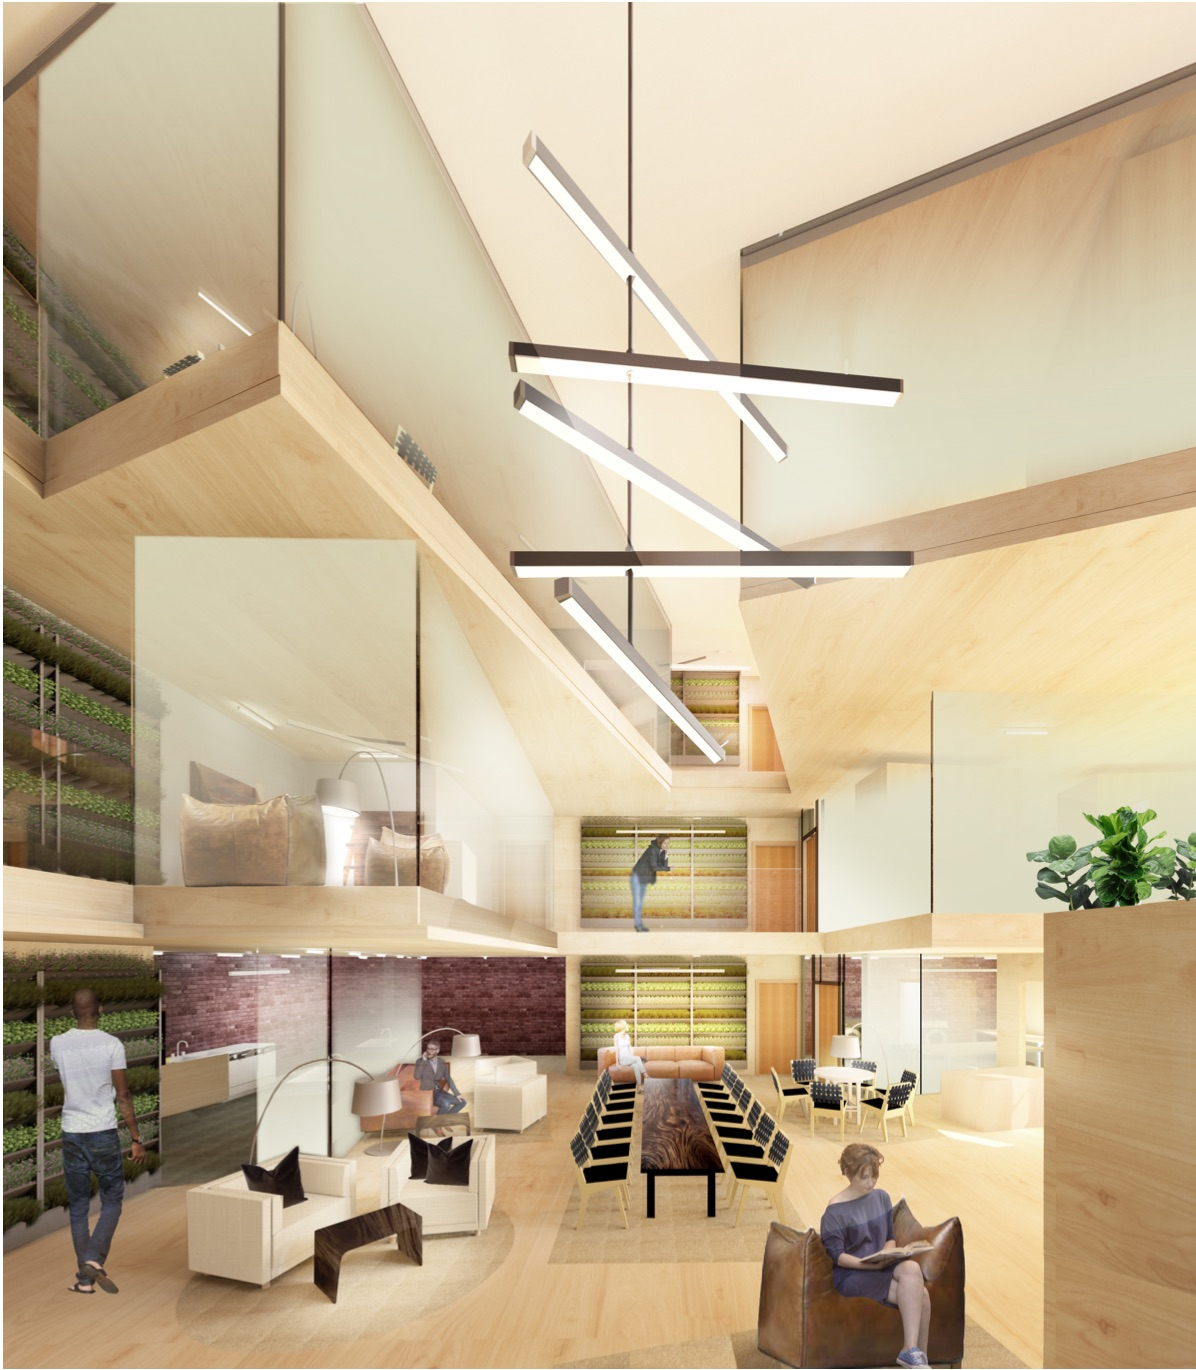 Interior Architecture Corcoran School Of The Arts Design The George Washington University